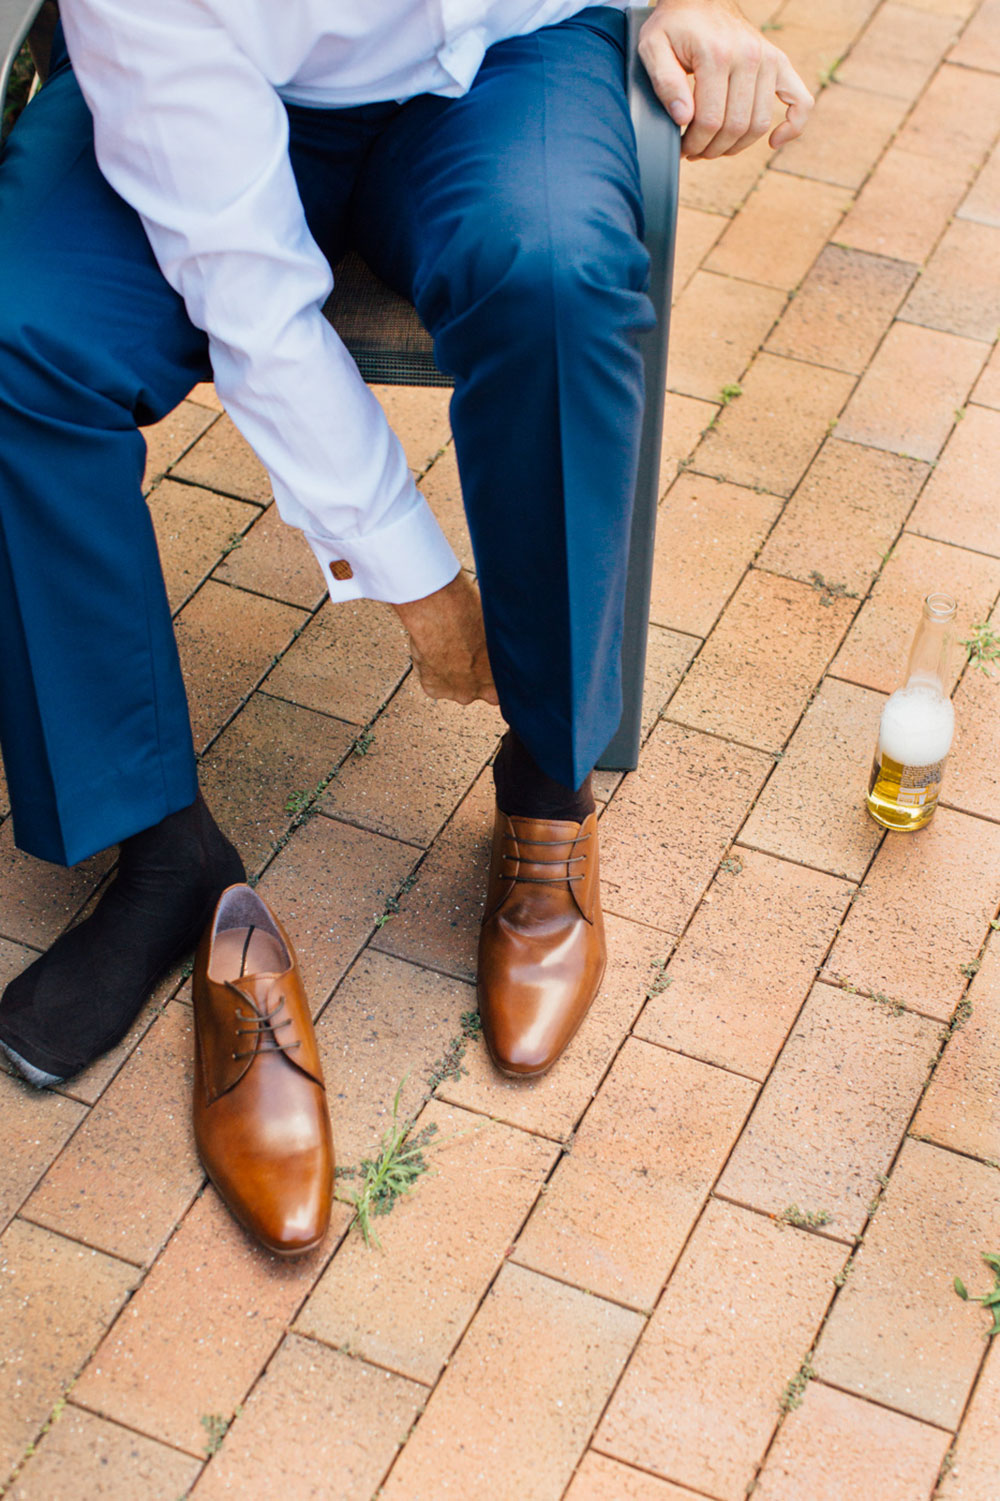 The groom tying his shoes